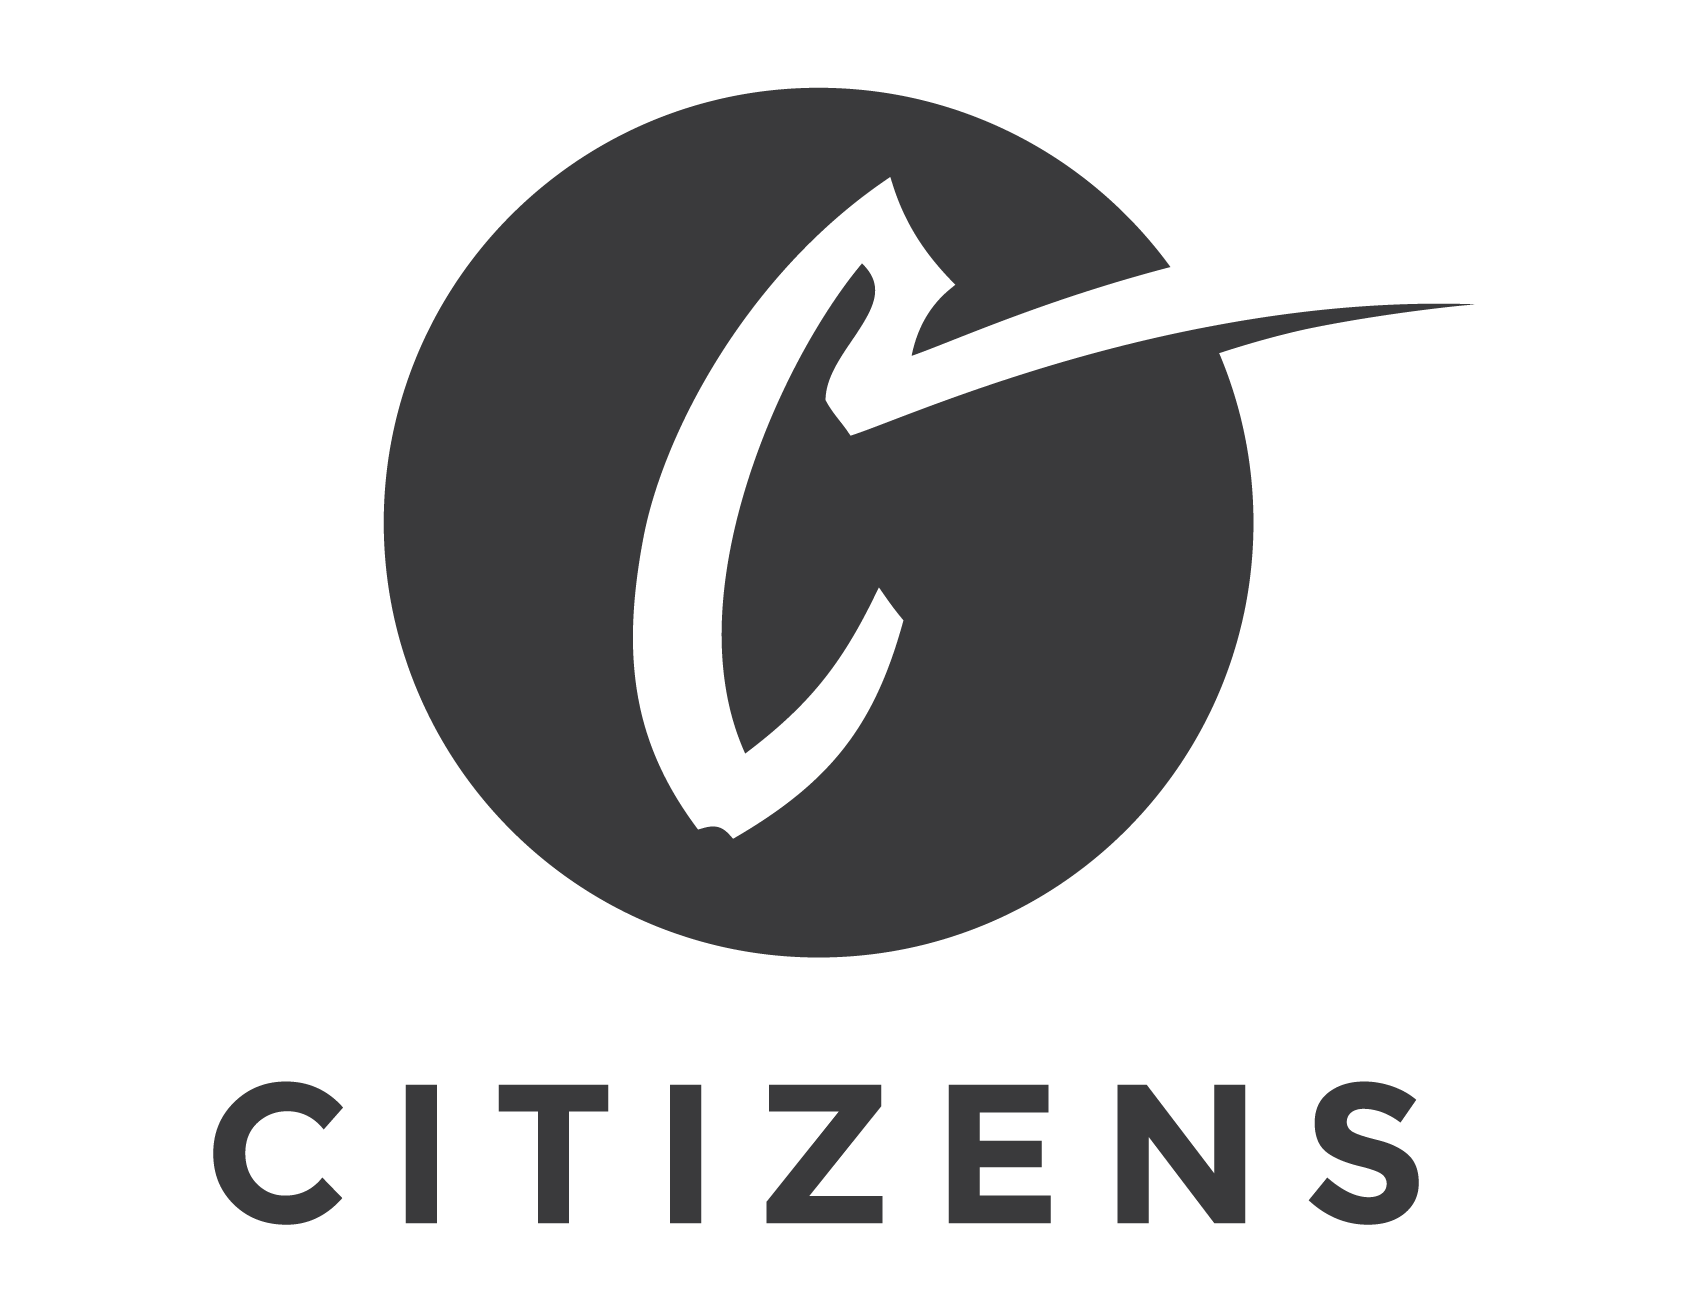 Citizens-White-Background-01.png